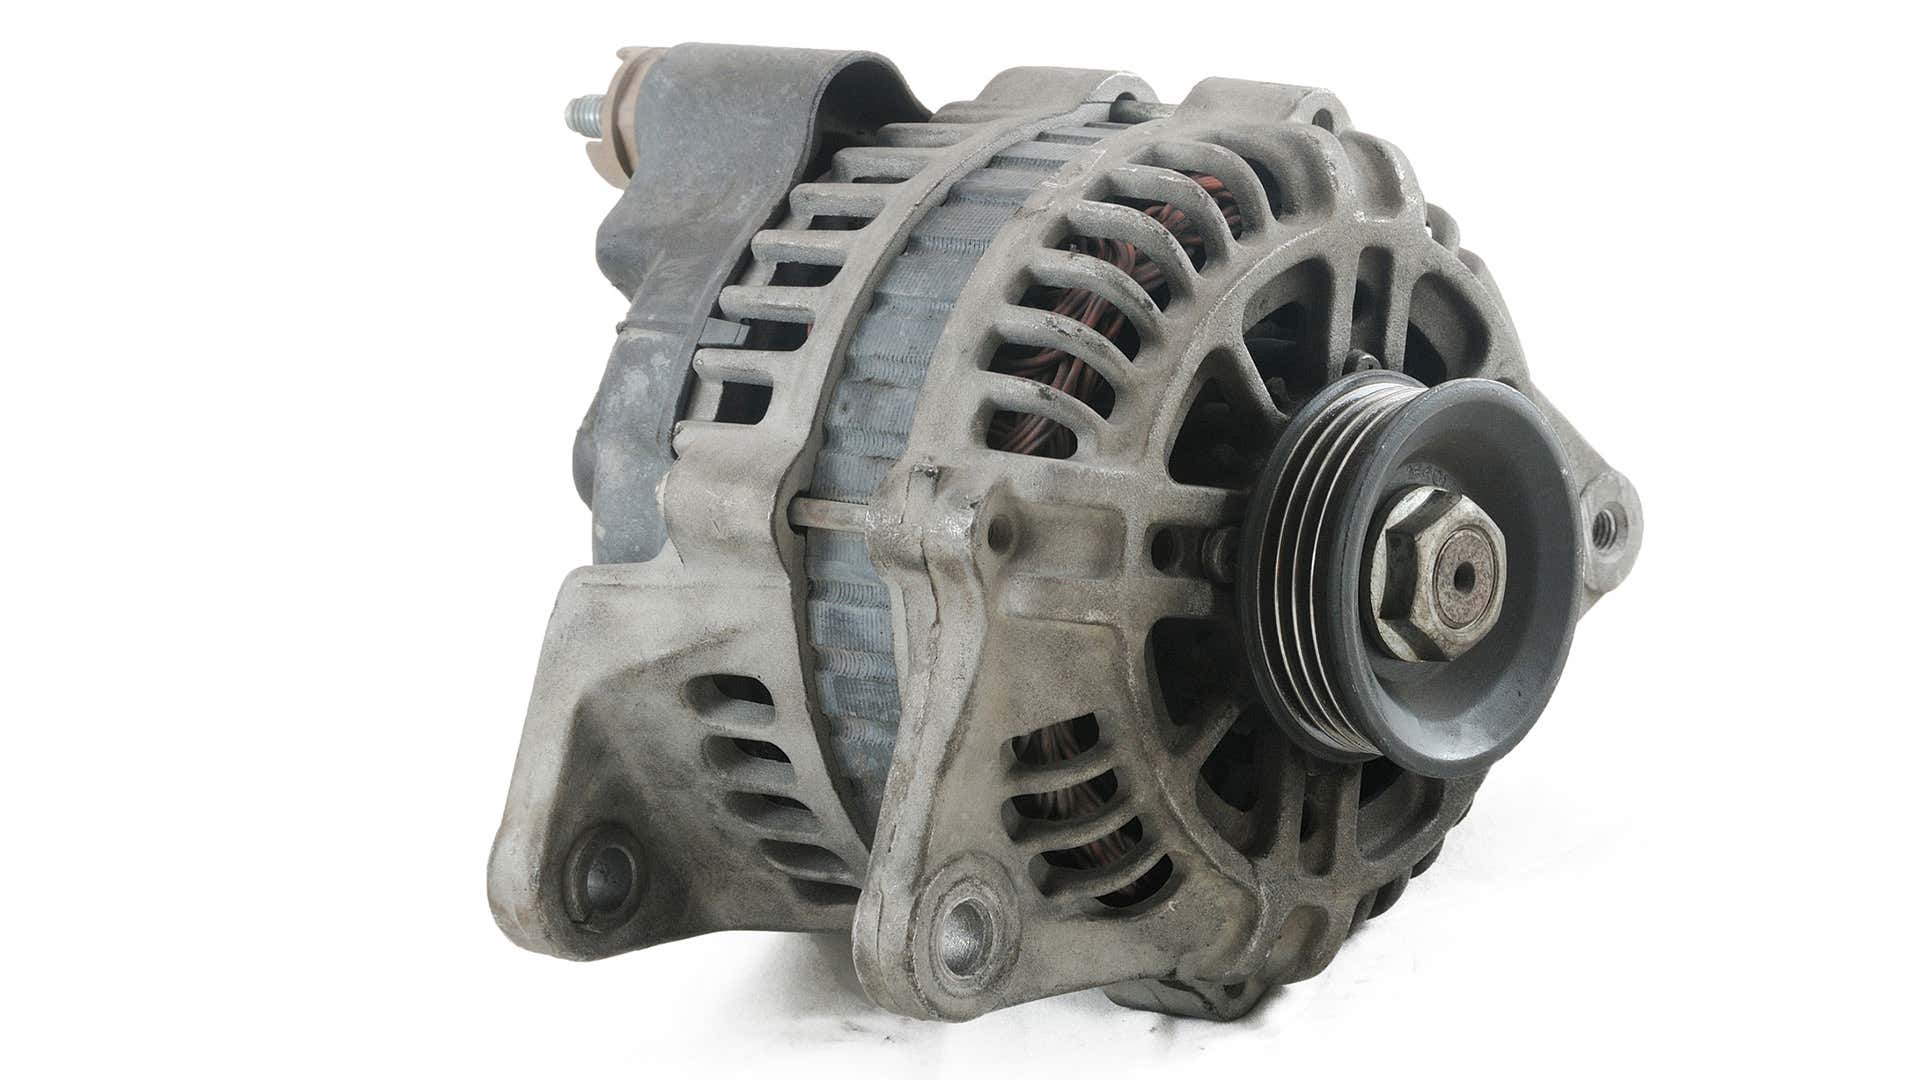 An alternator on a white background.